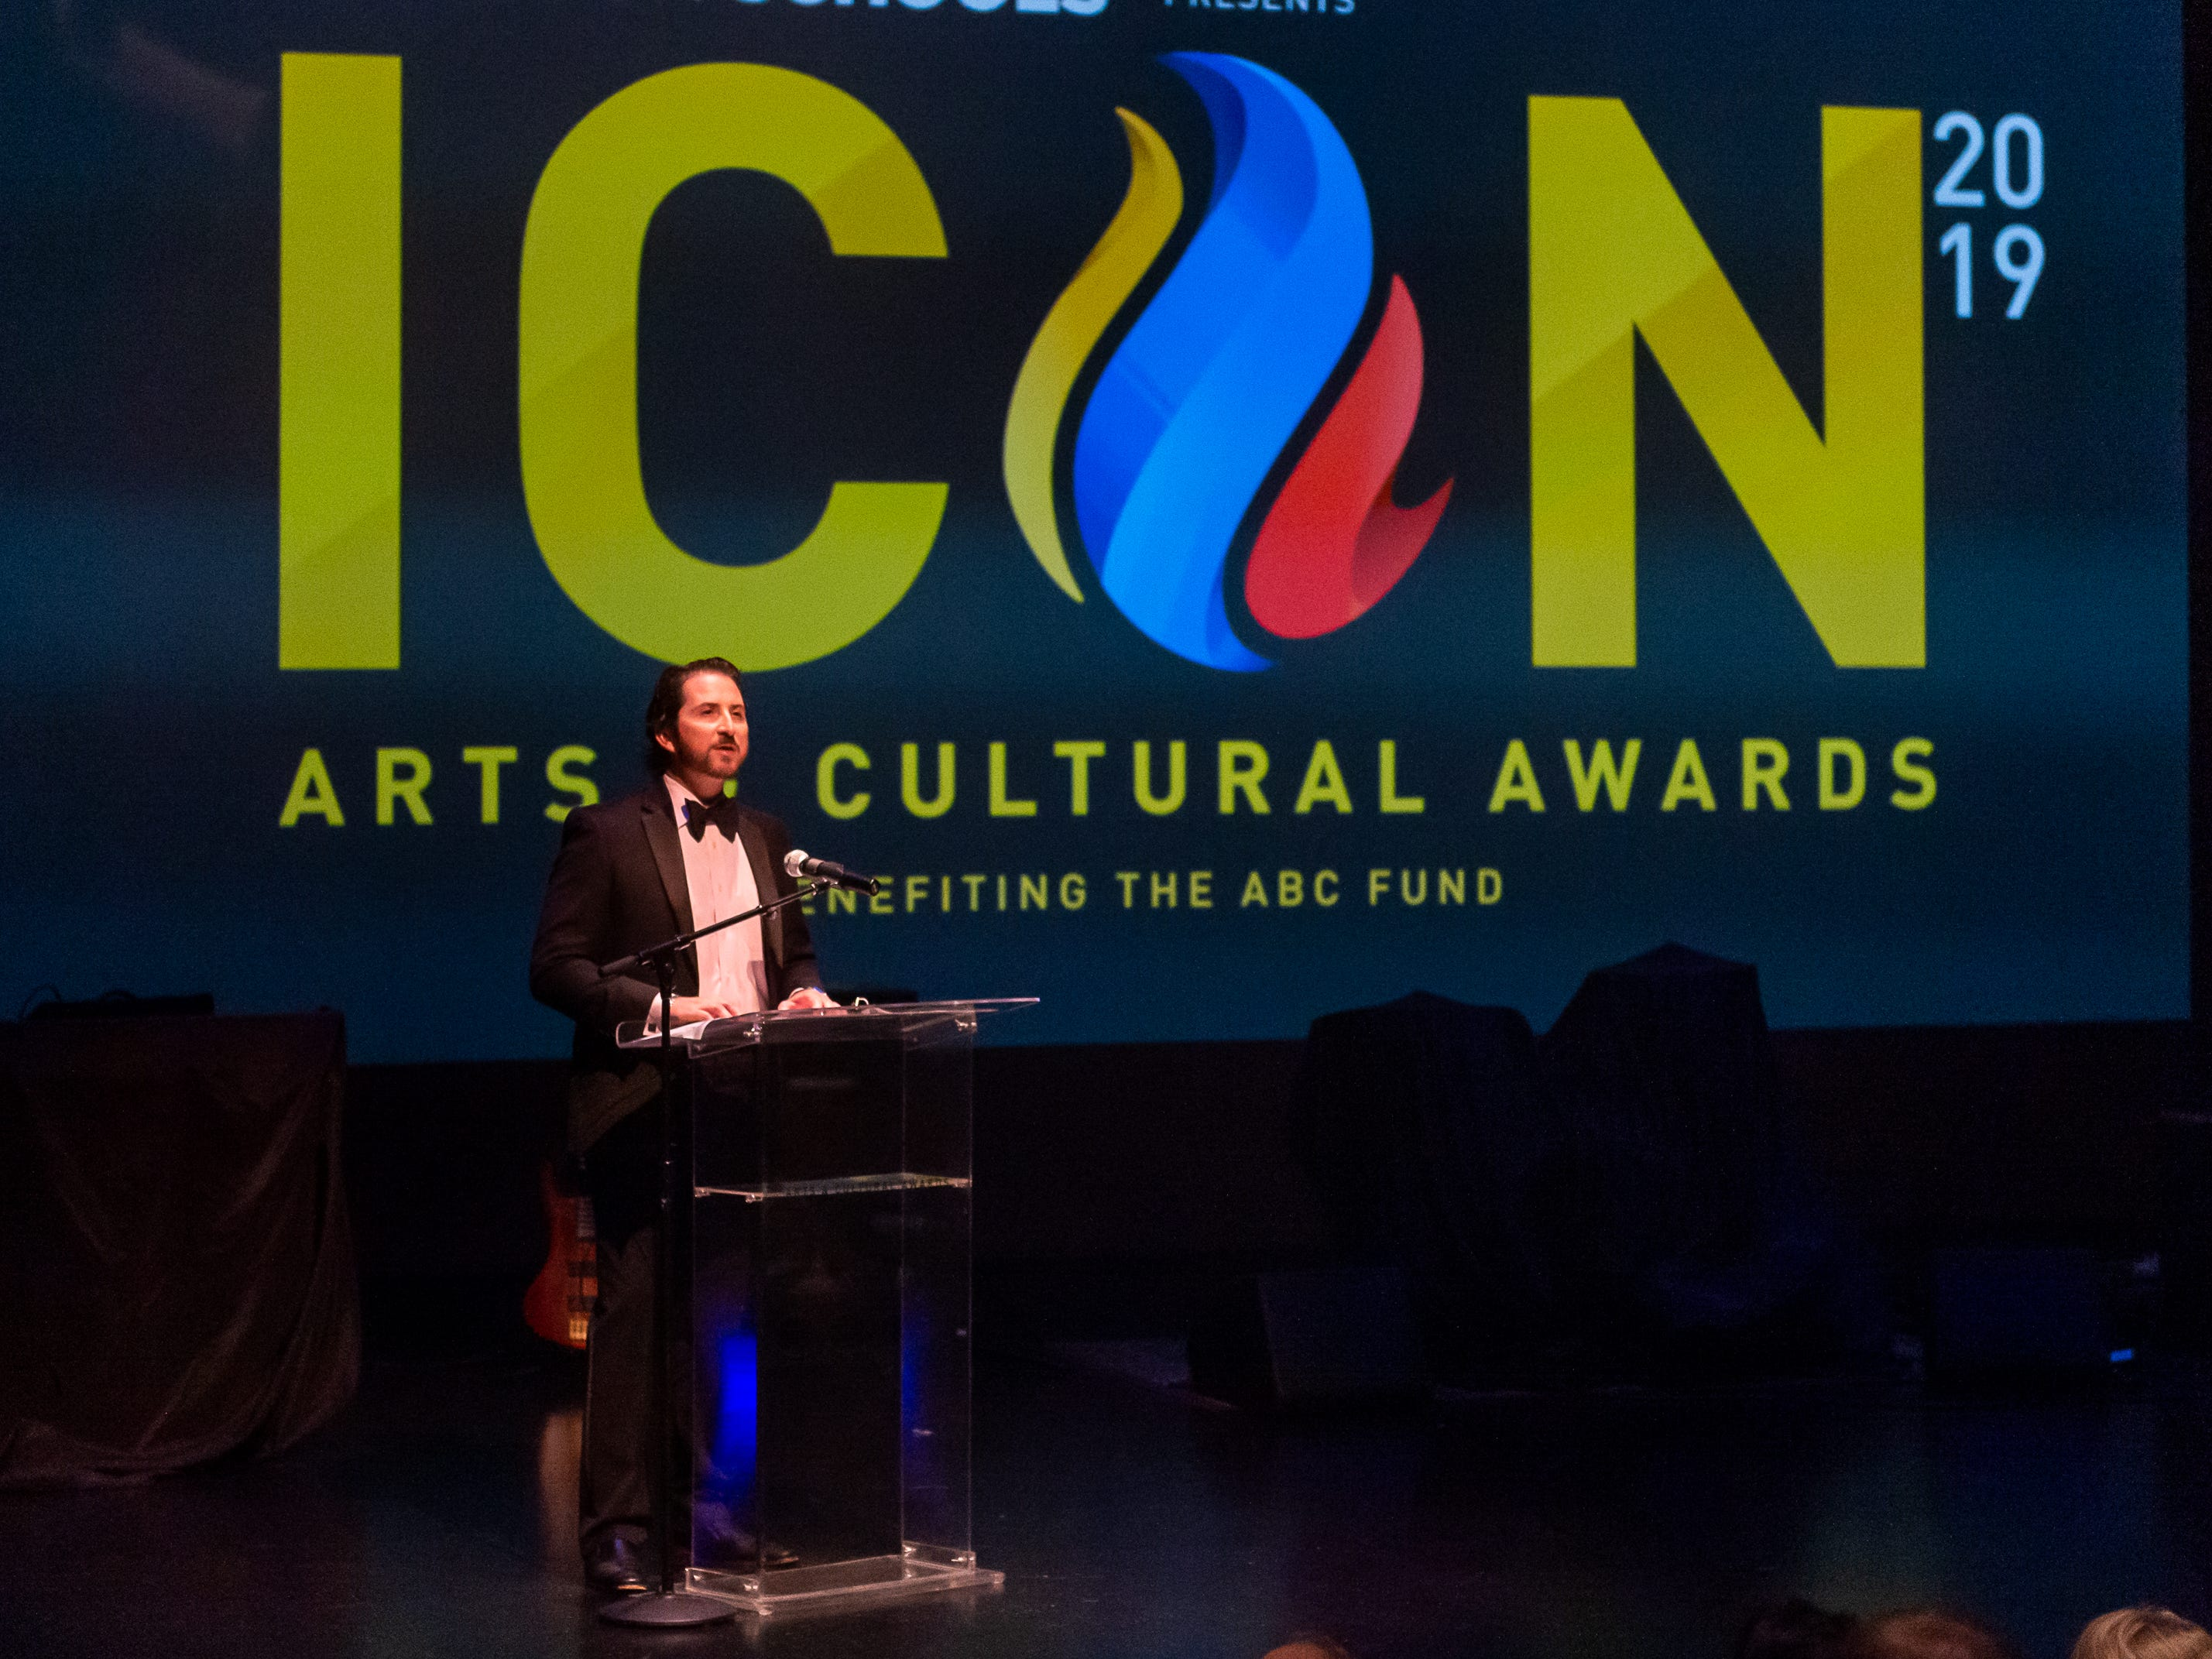 Ben Berthelot speaking at The 2019 Icon Arts & Cultural Awards Gala honoring Acadiana's Legends. Thursday, April 11, 2019.